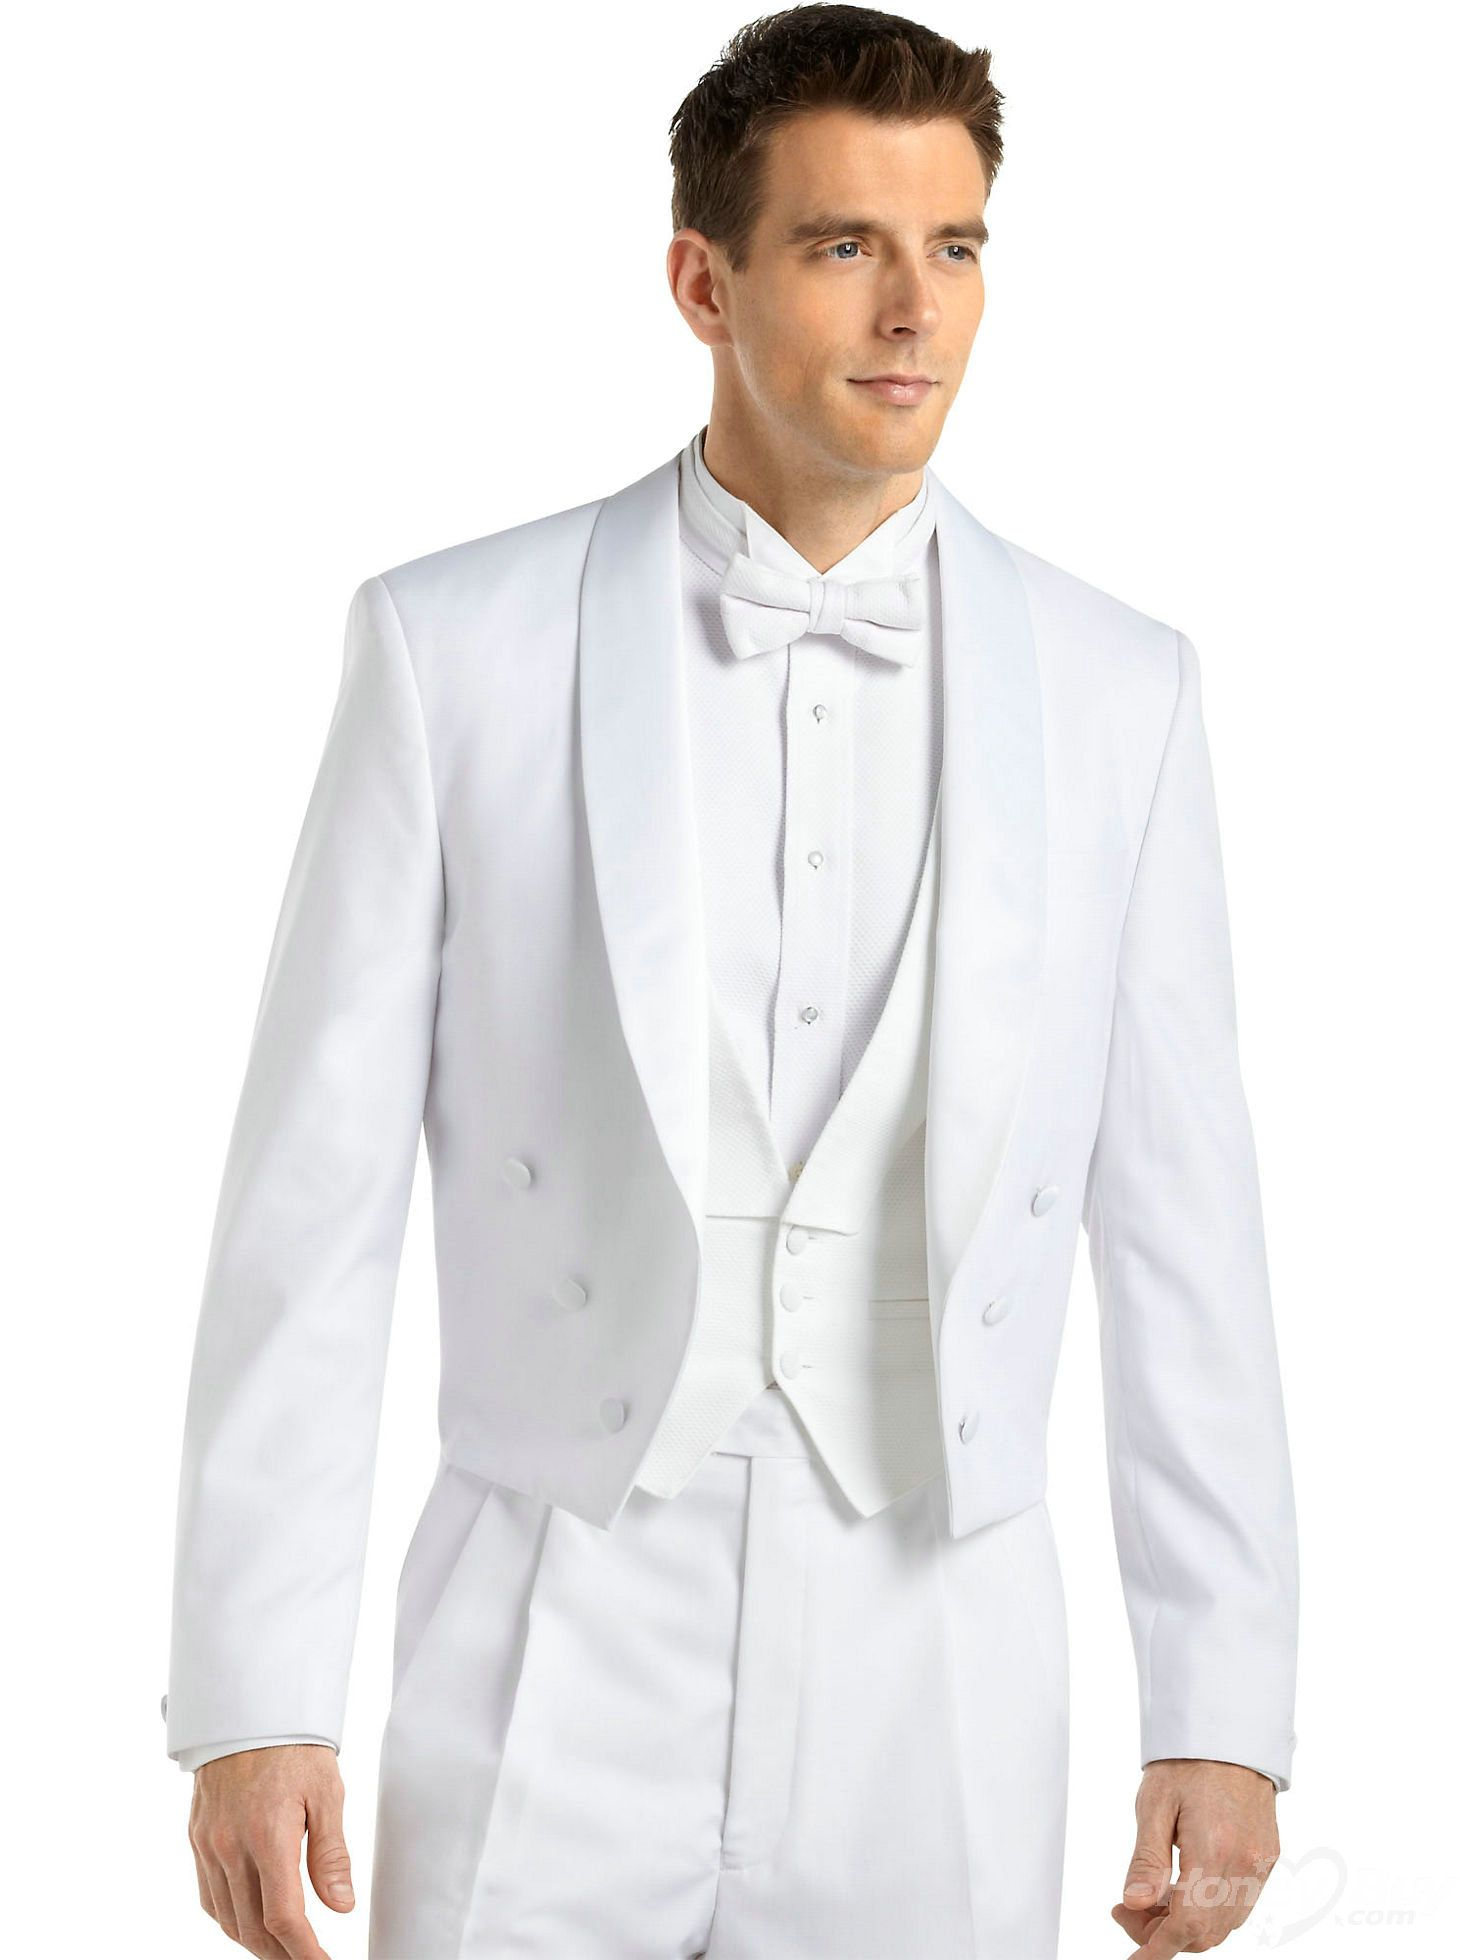 White Suits for Men 2014 - Light Tuxedo for Boys 2015 | CHESTI DE